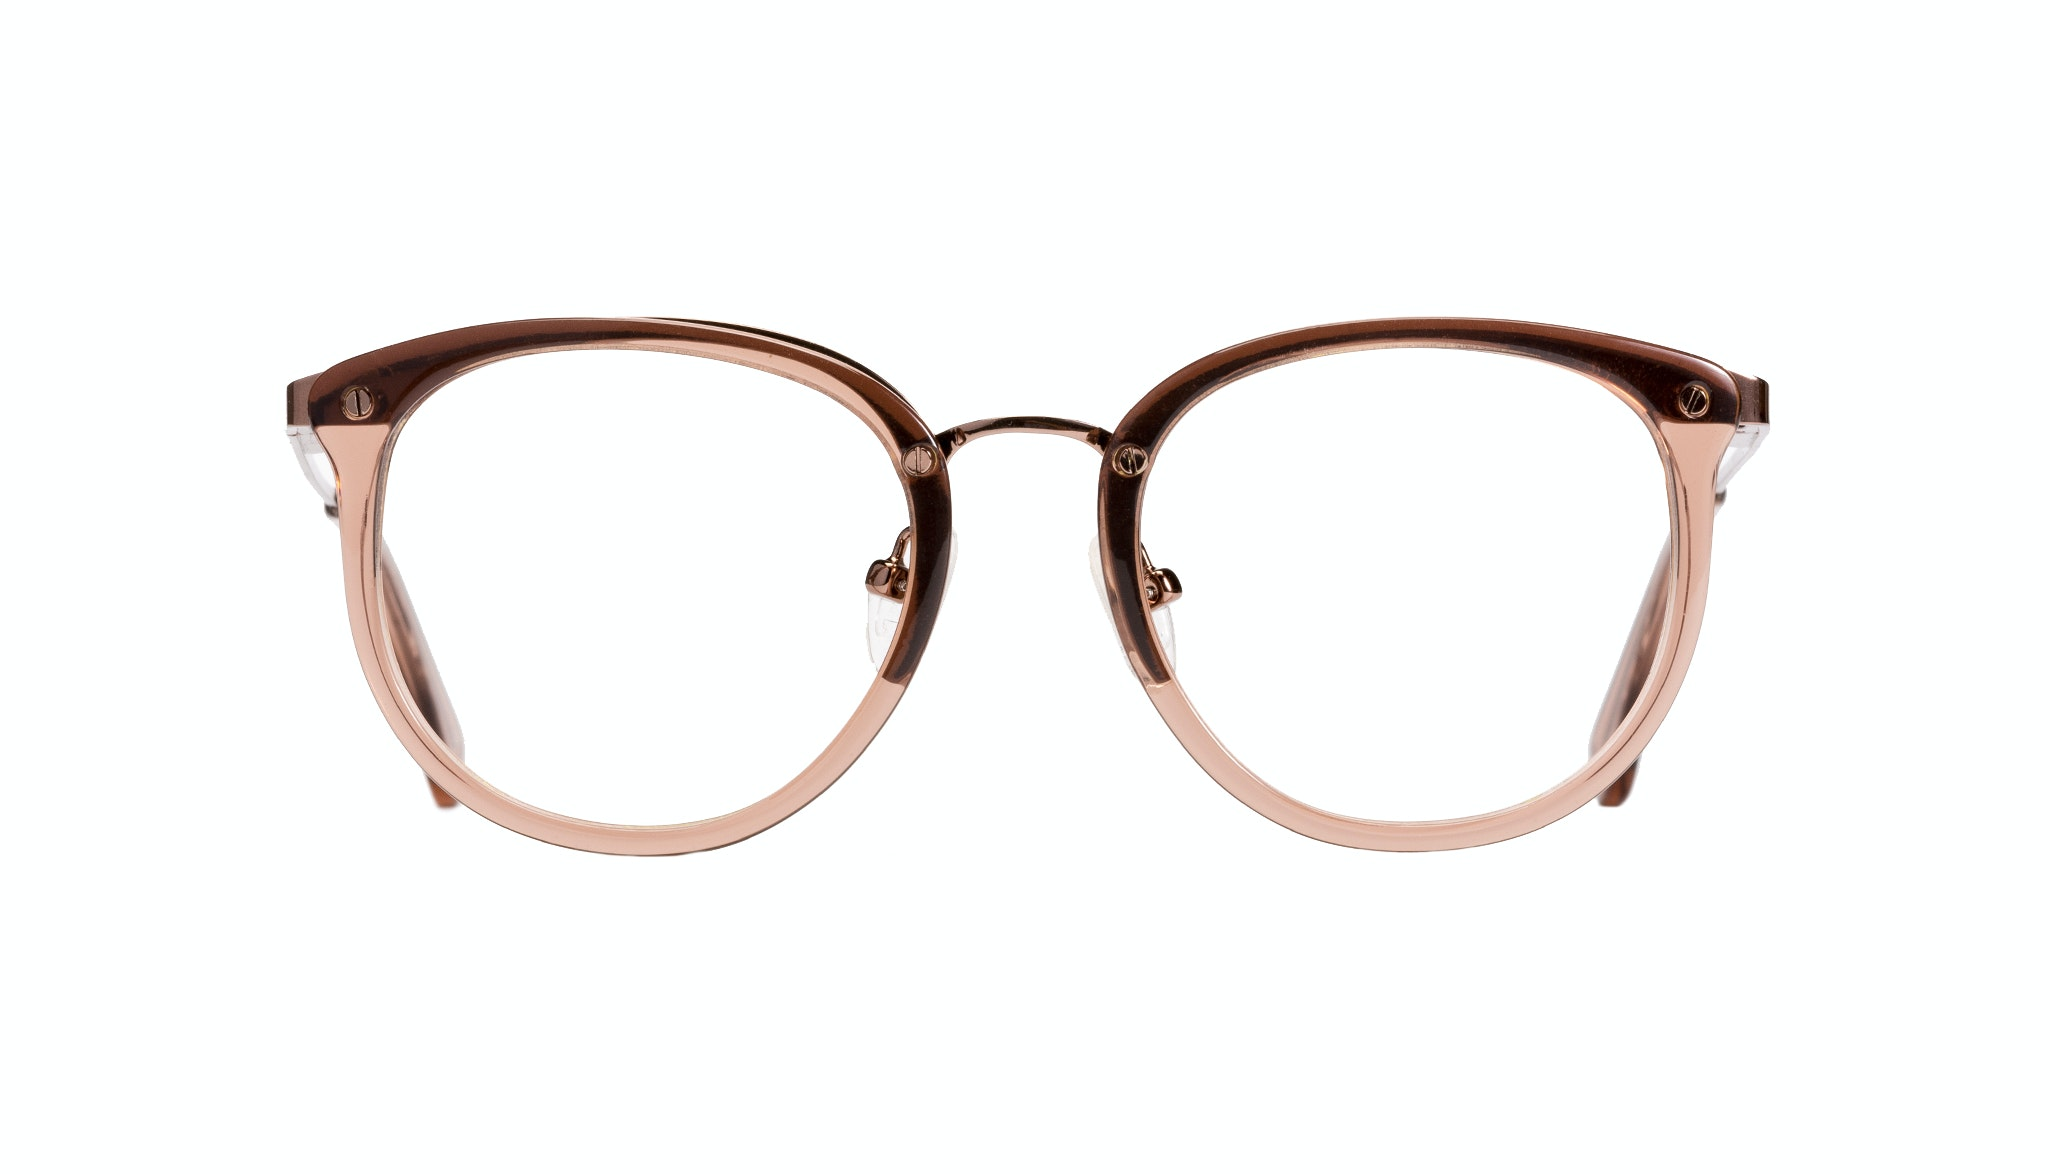 Affordable Fashion Glasses Cat Eye Round Eyeglasses Women Amaze Petite Rose